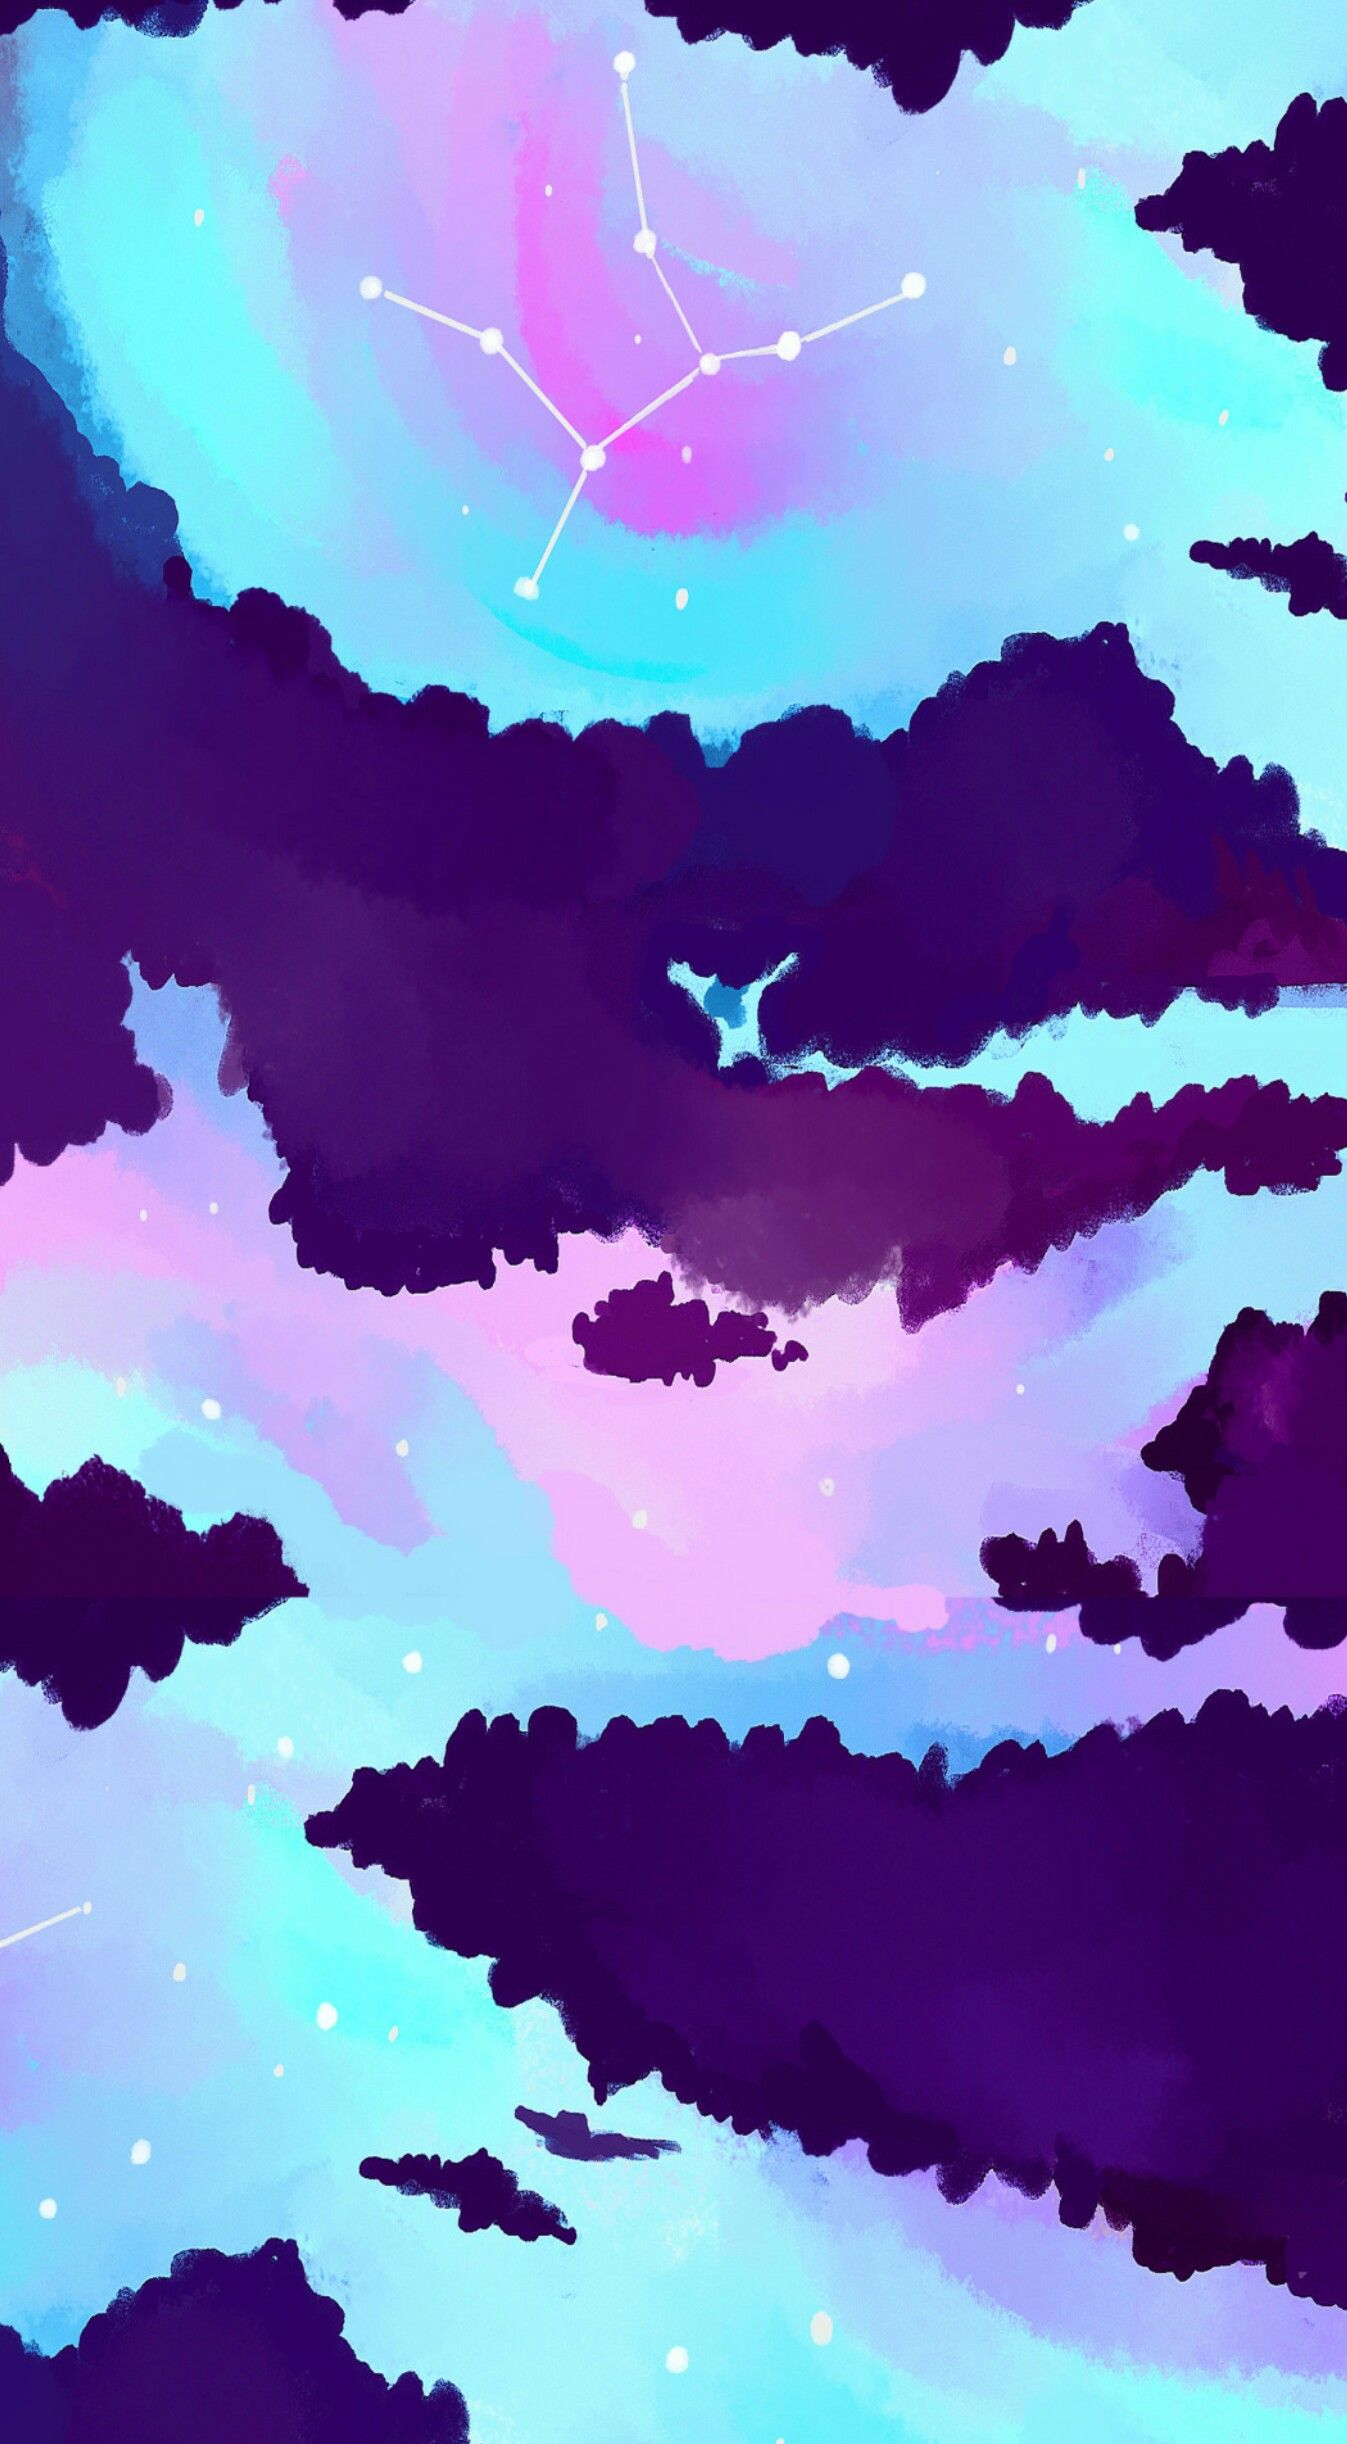 Aesthetic Backgrounds For Your Phone